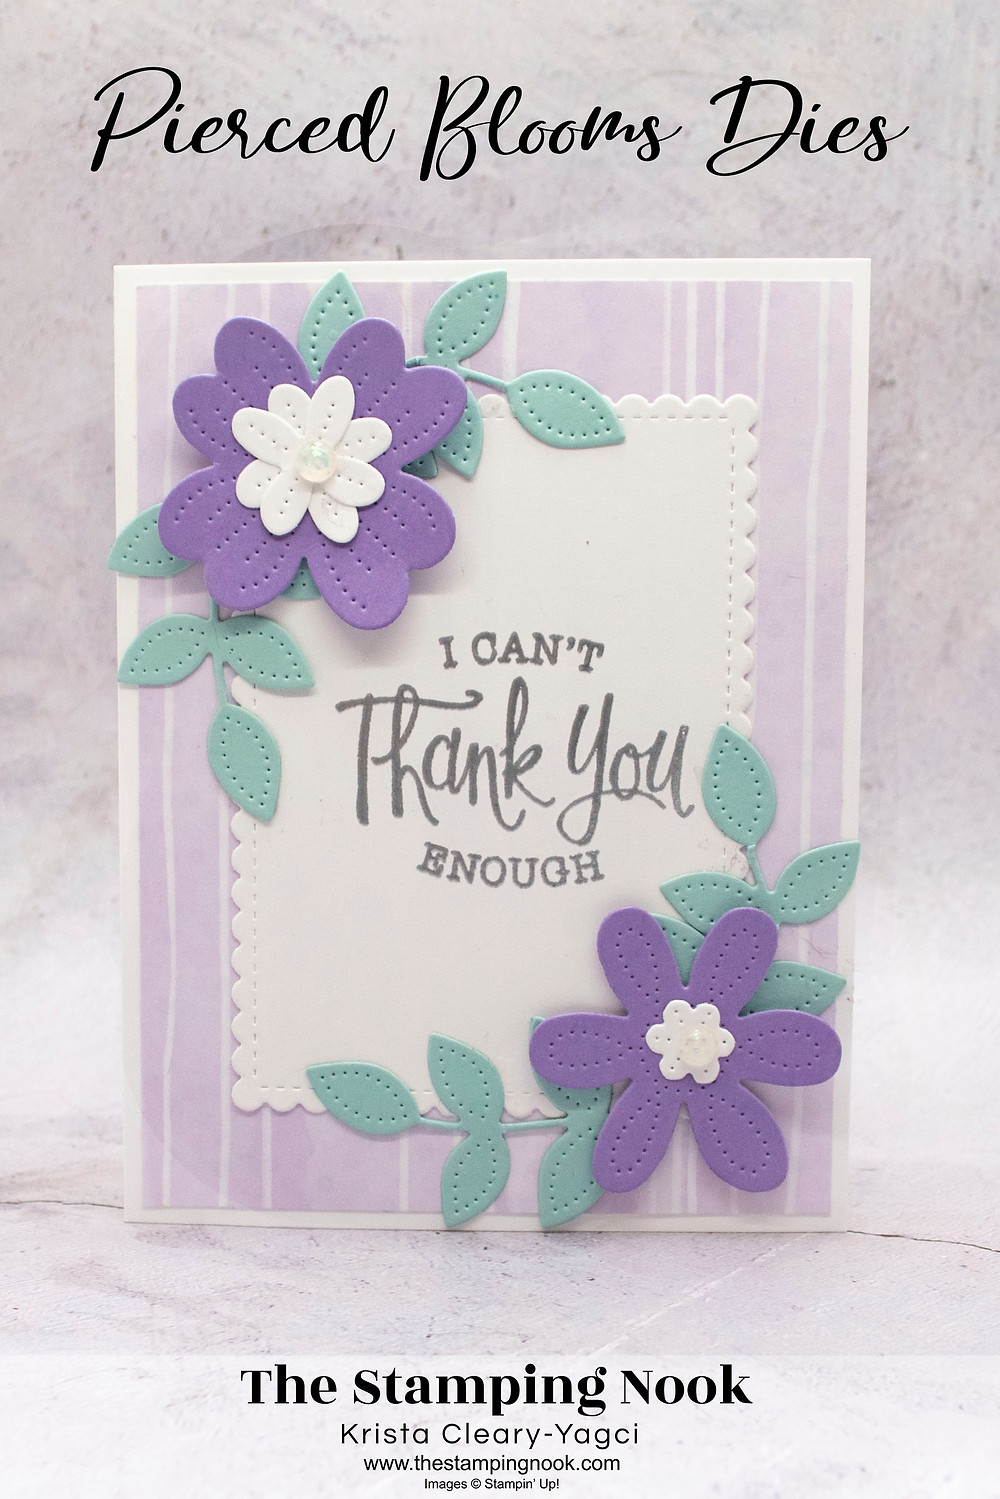 Stampin' Up! Card Ideas - Stampin Up Card Ideas – So Sentimental Stamp Set – So Sentimental Card Ideas – So Sentimental Stampin Up – Stampin Up So Sentimental Cards –  Pierced Blooms Dies – Pierced Blooms Dies Card Ideas Stampin Up Catalog - The Stamping Nook - Krista Cleary-Yagci – Stampin' Up! Demonstrator – Stampin Up Pennsylvania – Stampin Up New Jersey